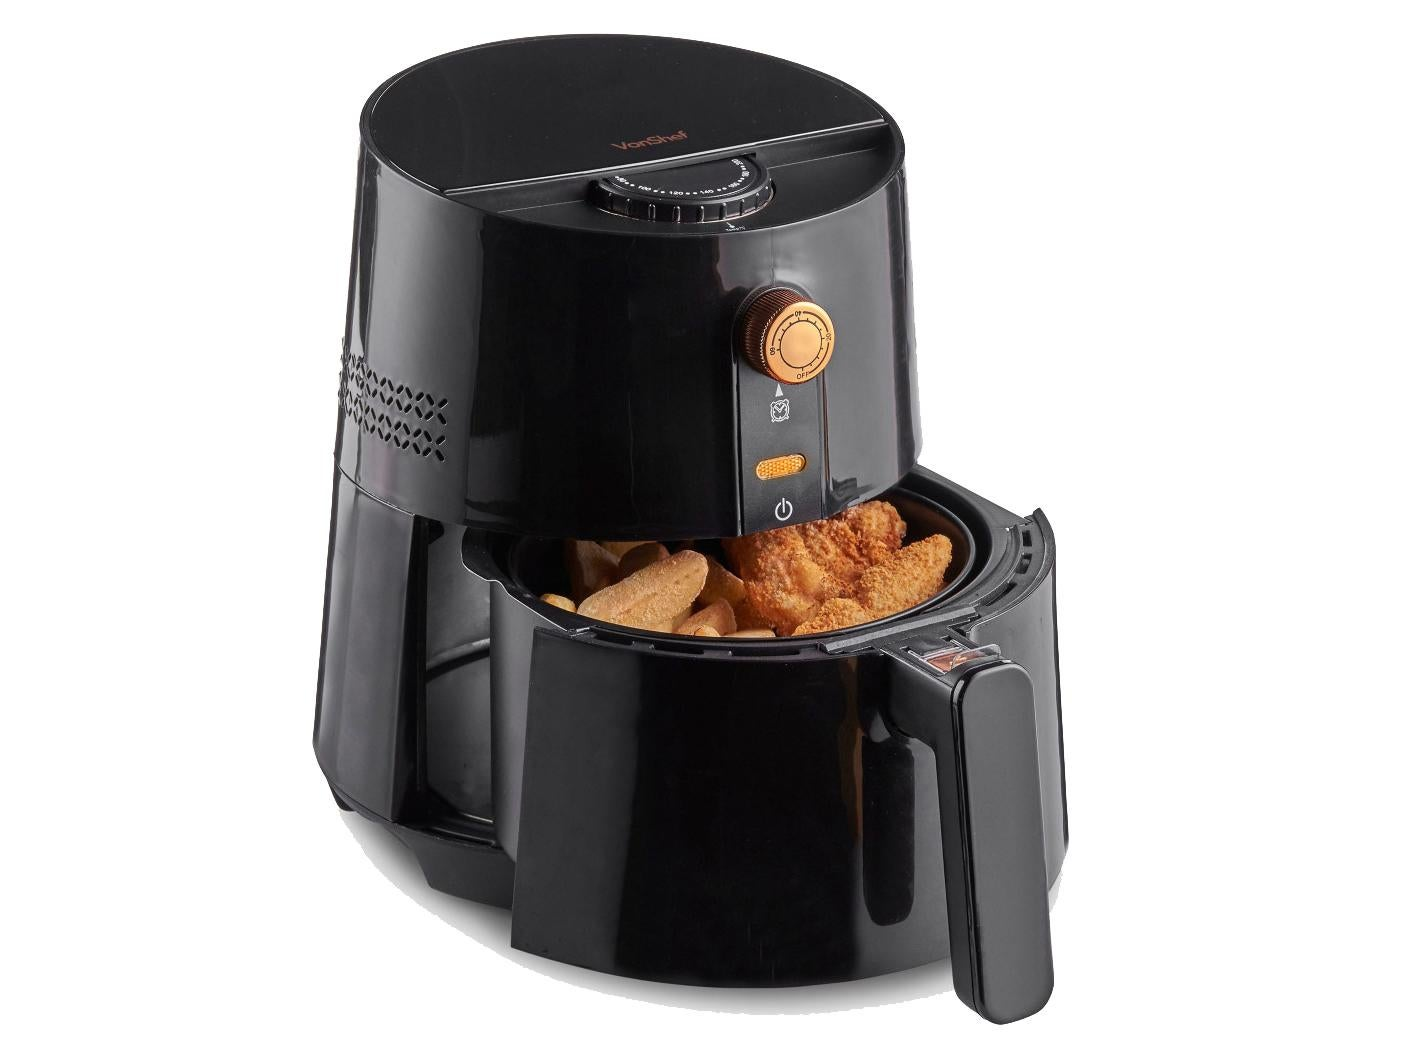 10 Best Air Fryers The Independent